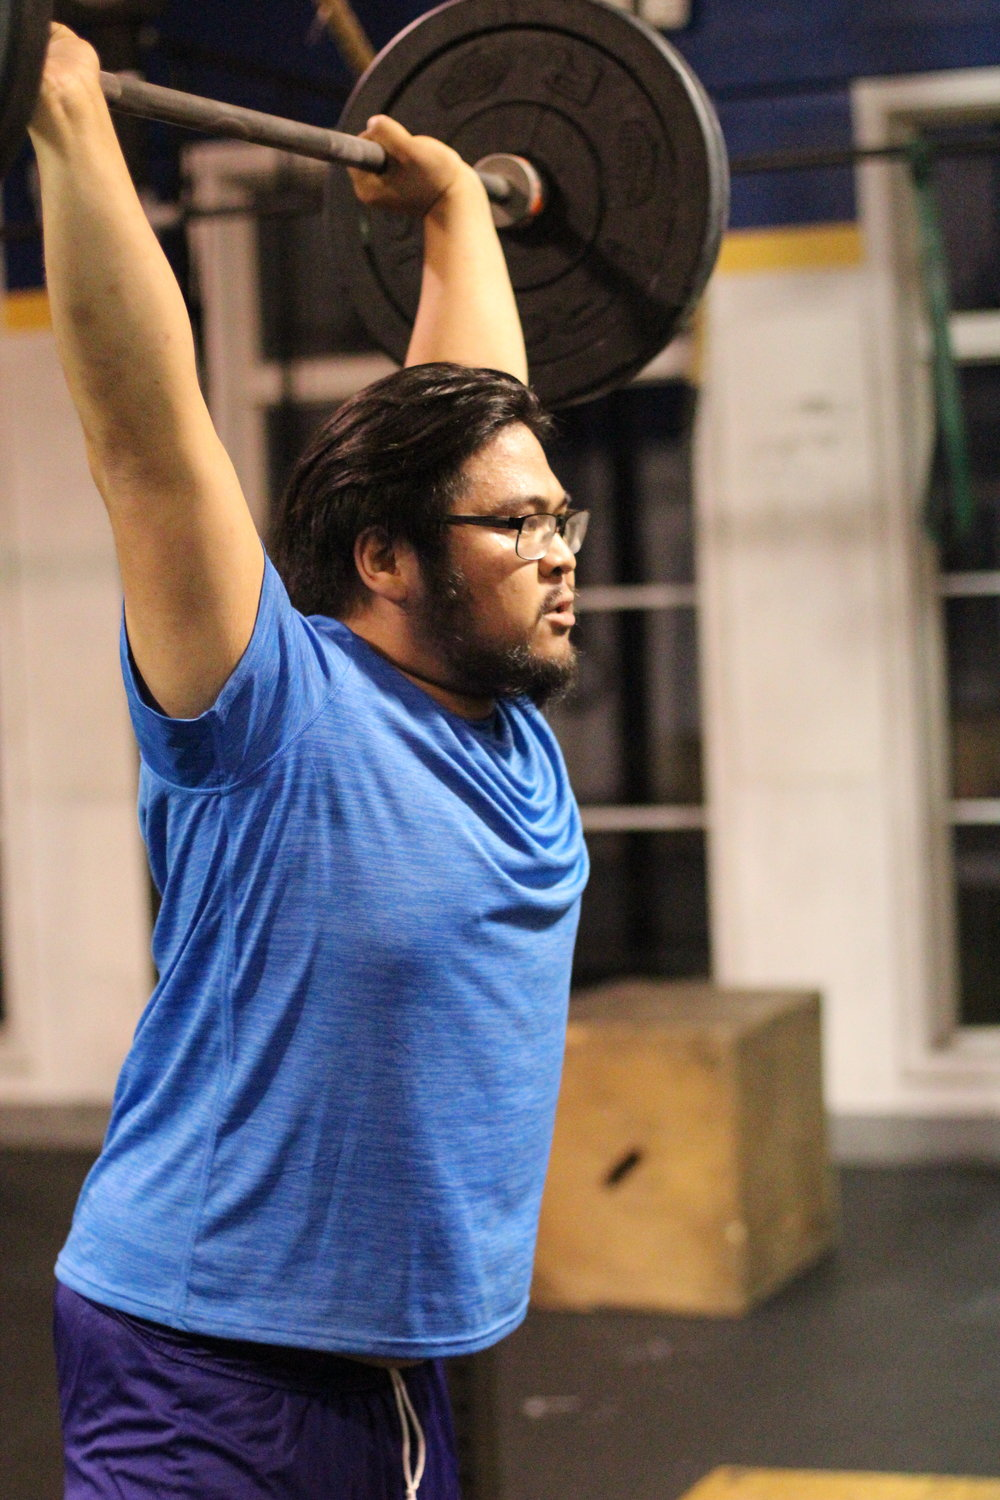 Barbells from ground to overhead? No problem! Here's PVCF athlete Bueno determined and triumphant in this clean and jerk!